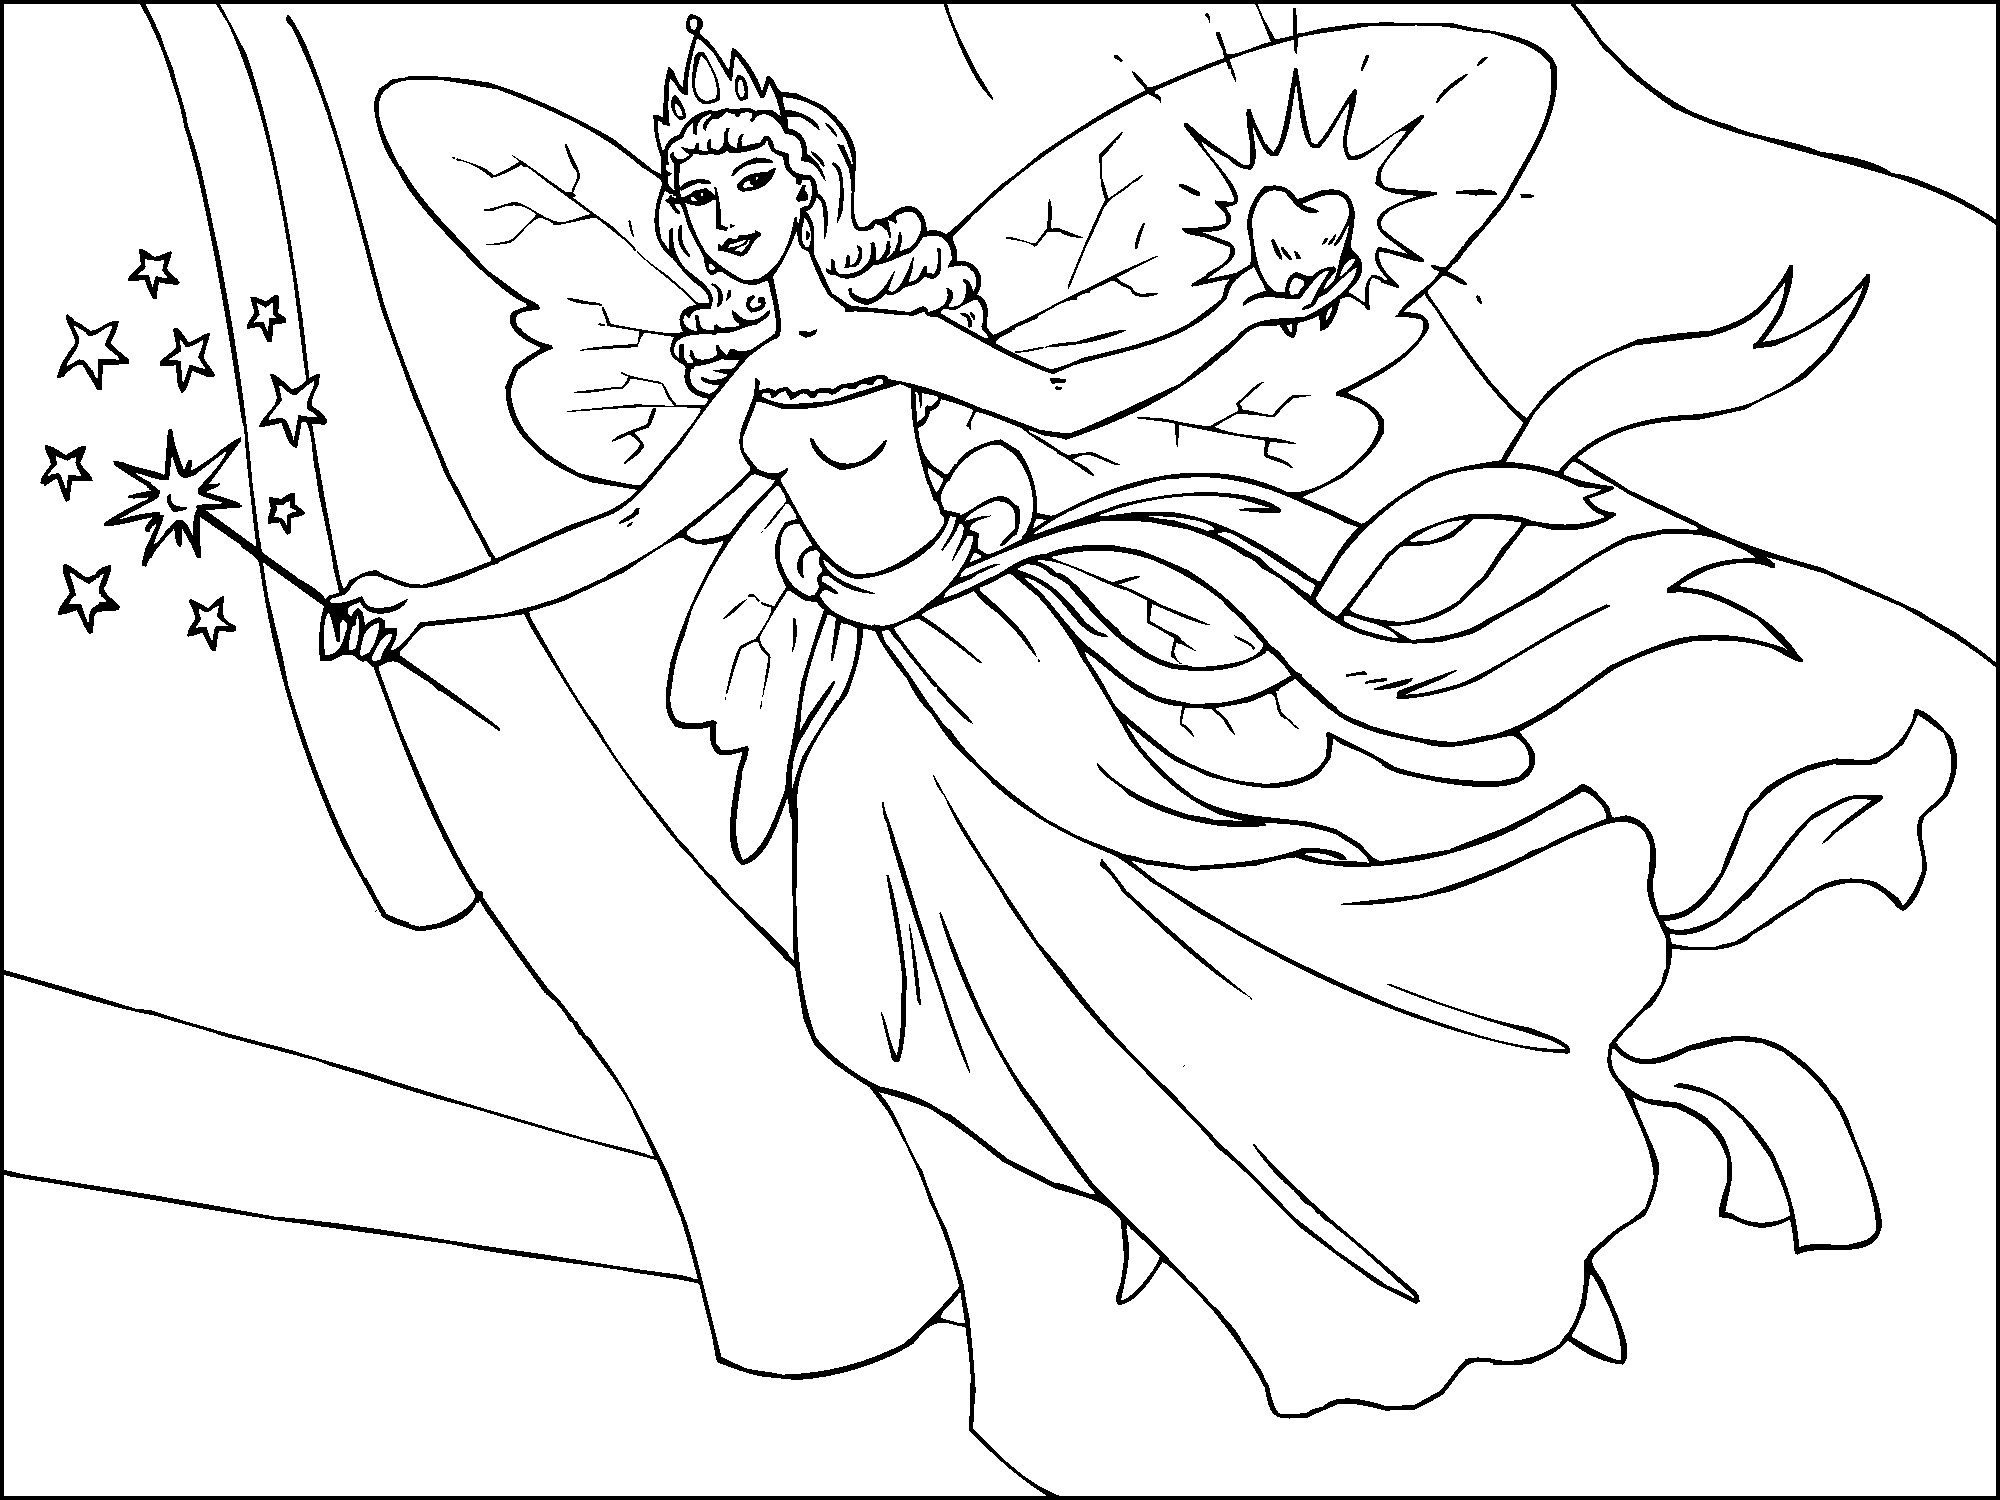 Free Printable Fairy Coloring Pages For Kids   Everything   Fairy - Free Printable Fairy Coloring Pictures